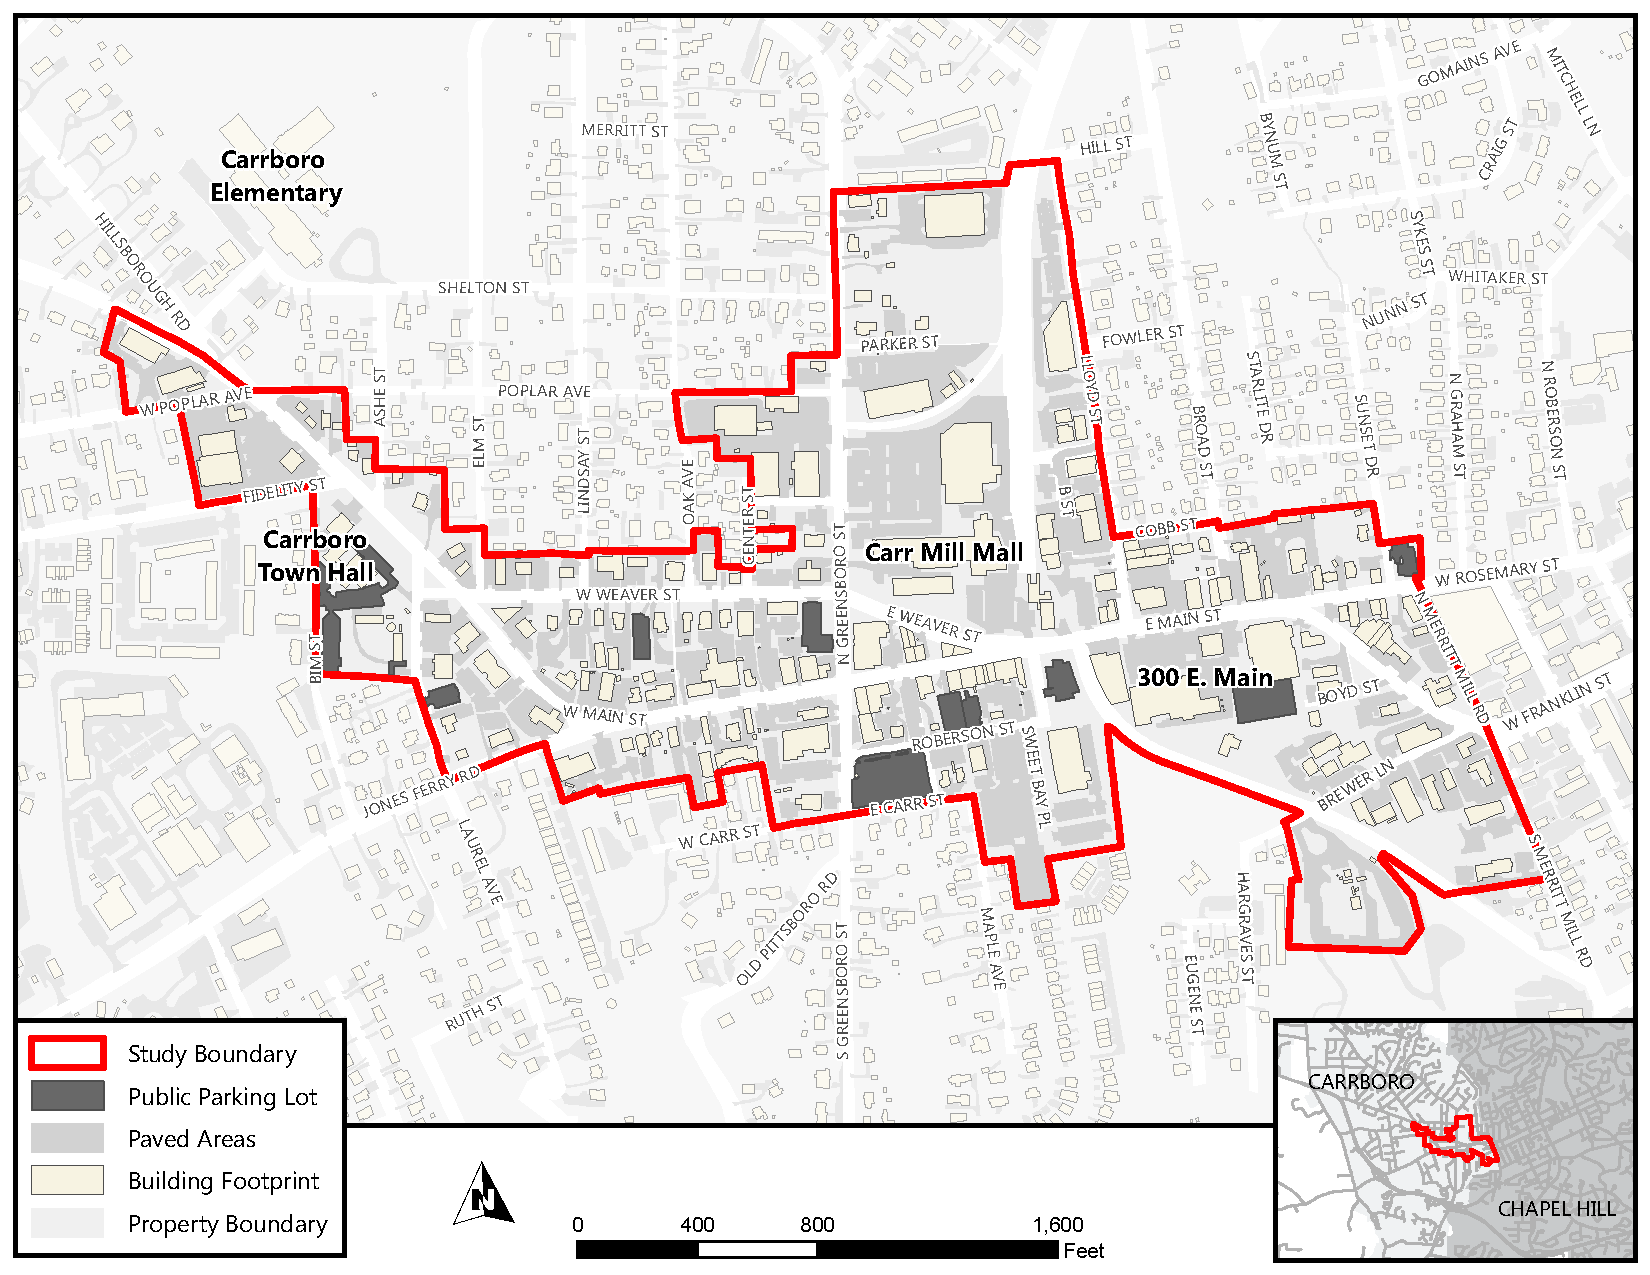 Downtown Carrboro Parking Study Area